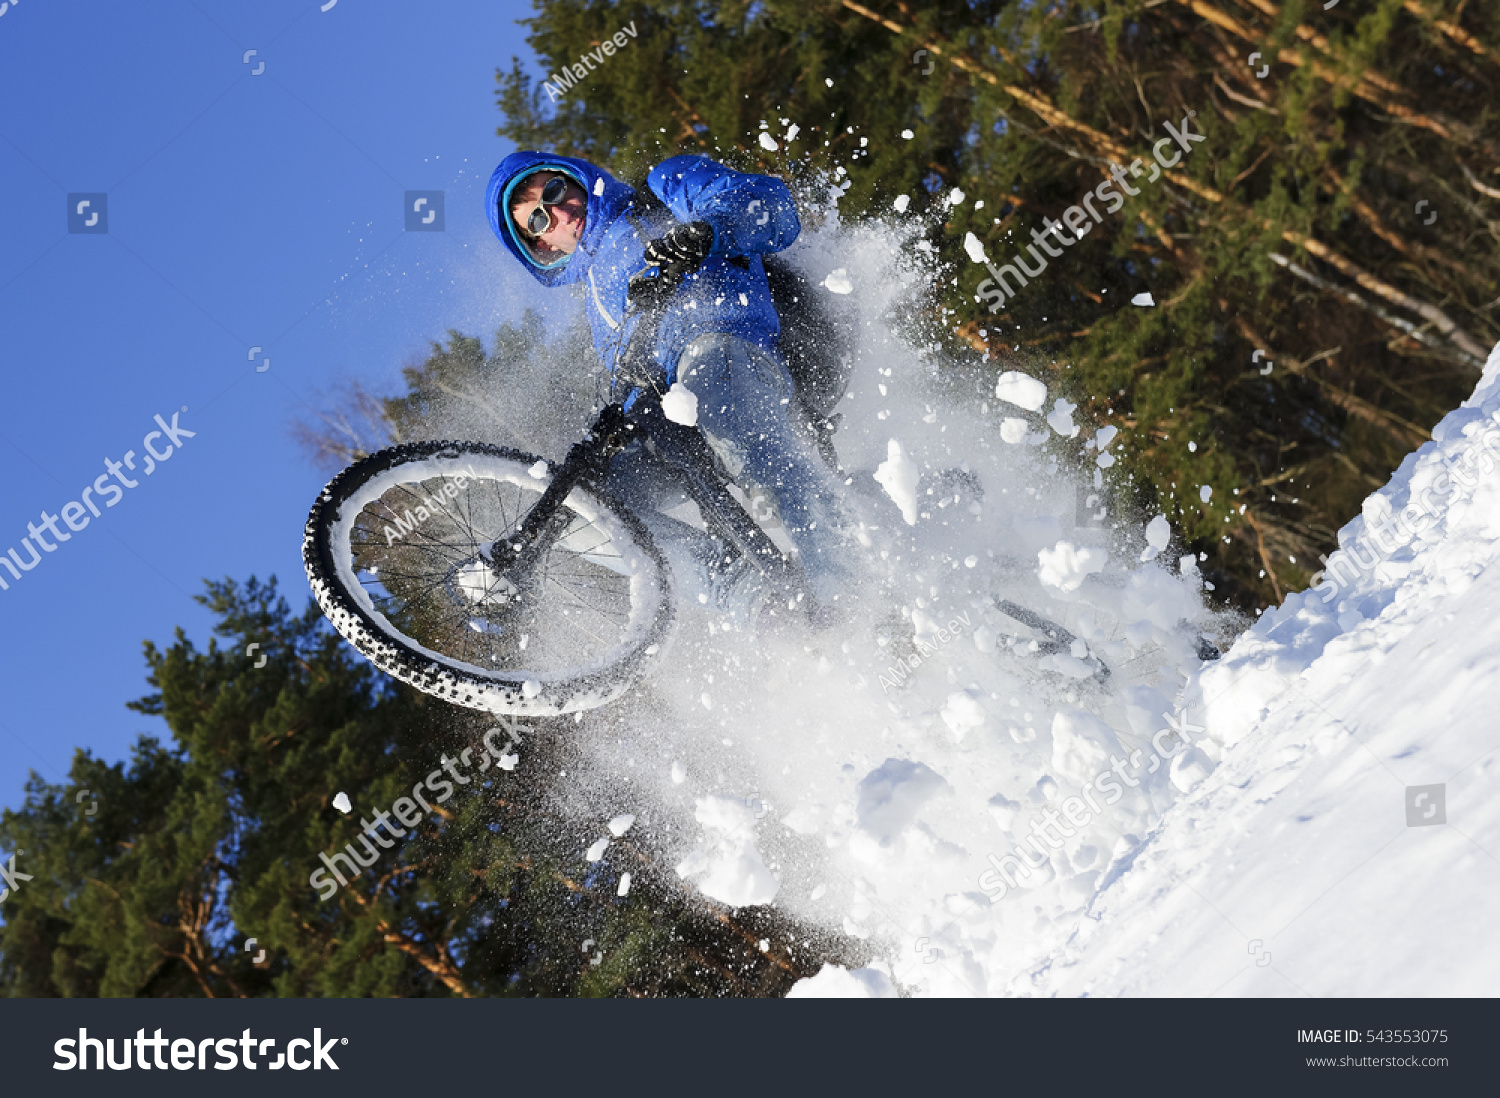 mountainbike snow winter extreme-#19